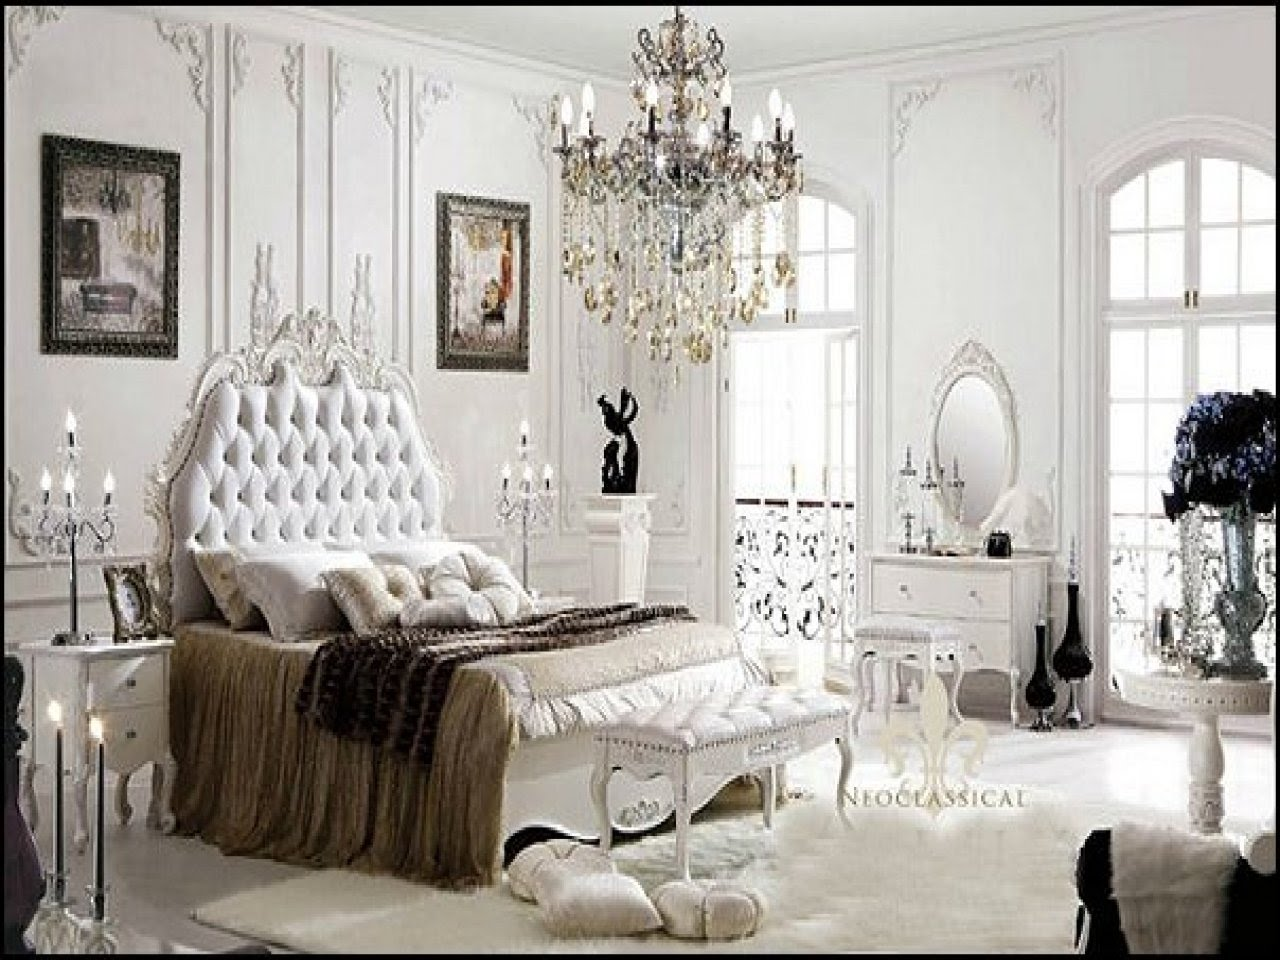 225 & French Provincial Bedroom Furniture - Visual Hunt